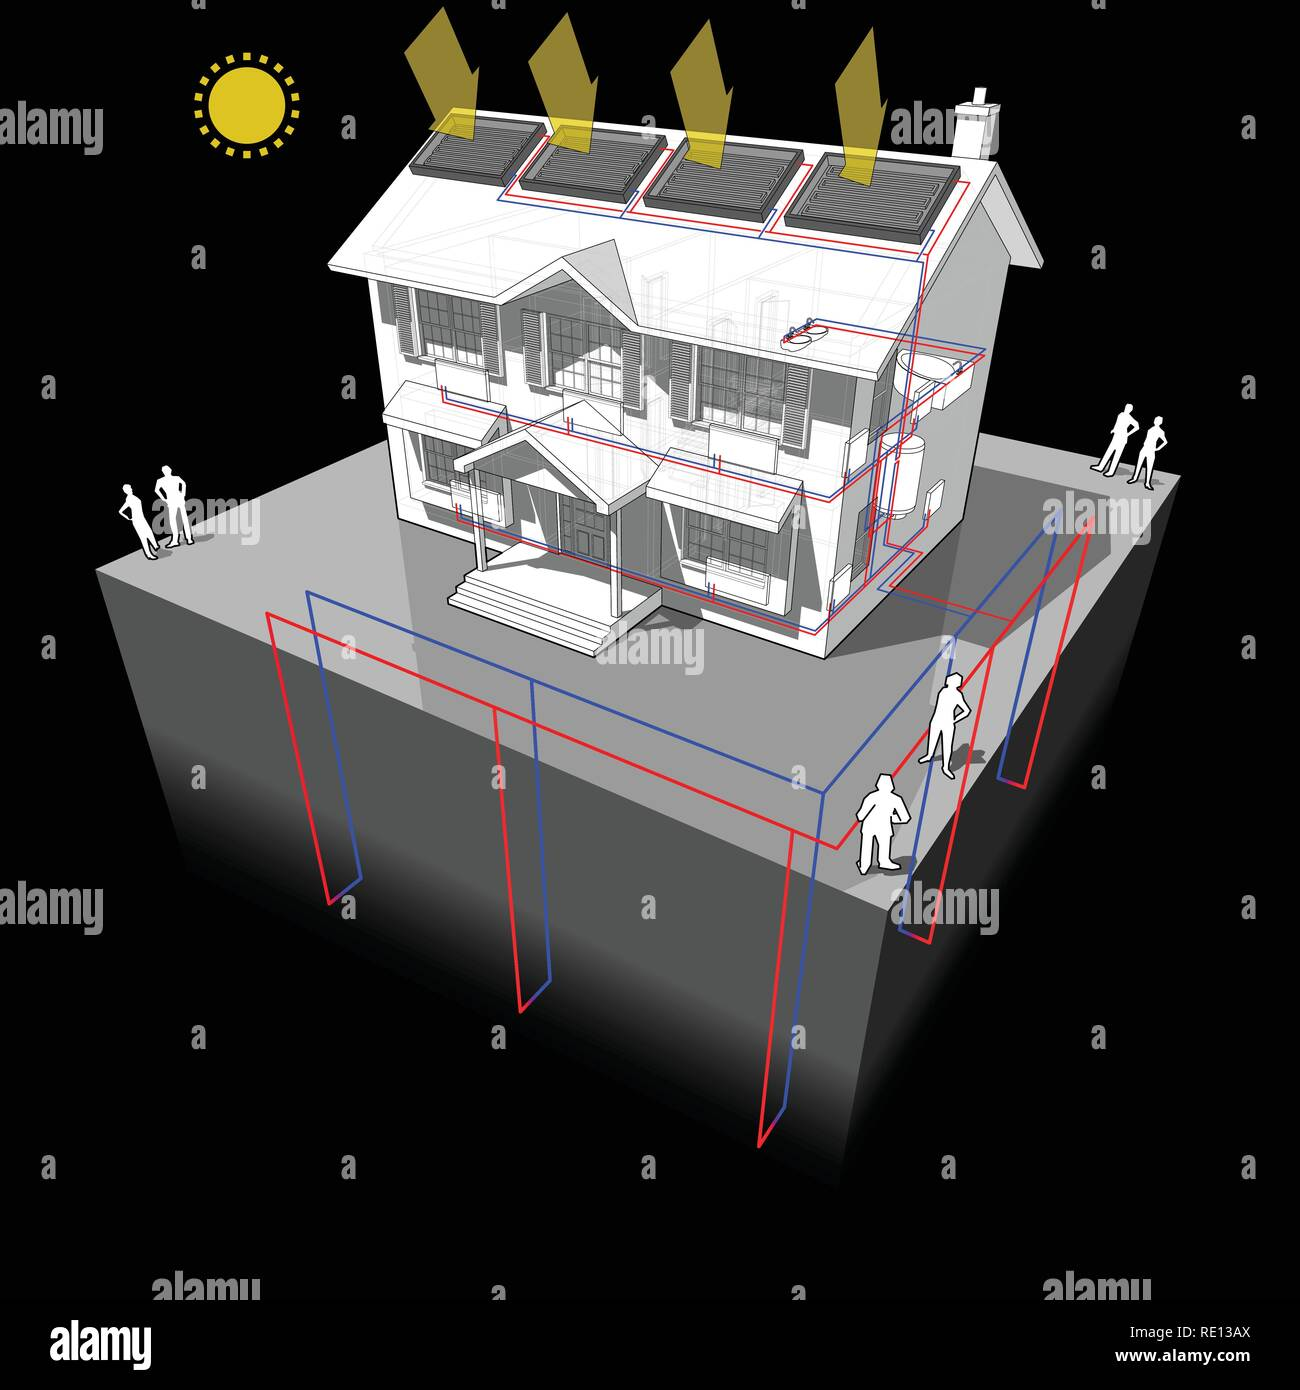 hight resolution of diagram of a classic colonial house with ground source heat pump and solar panels on the roof as source of energy for heating and radiators